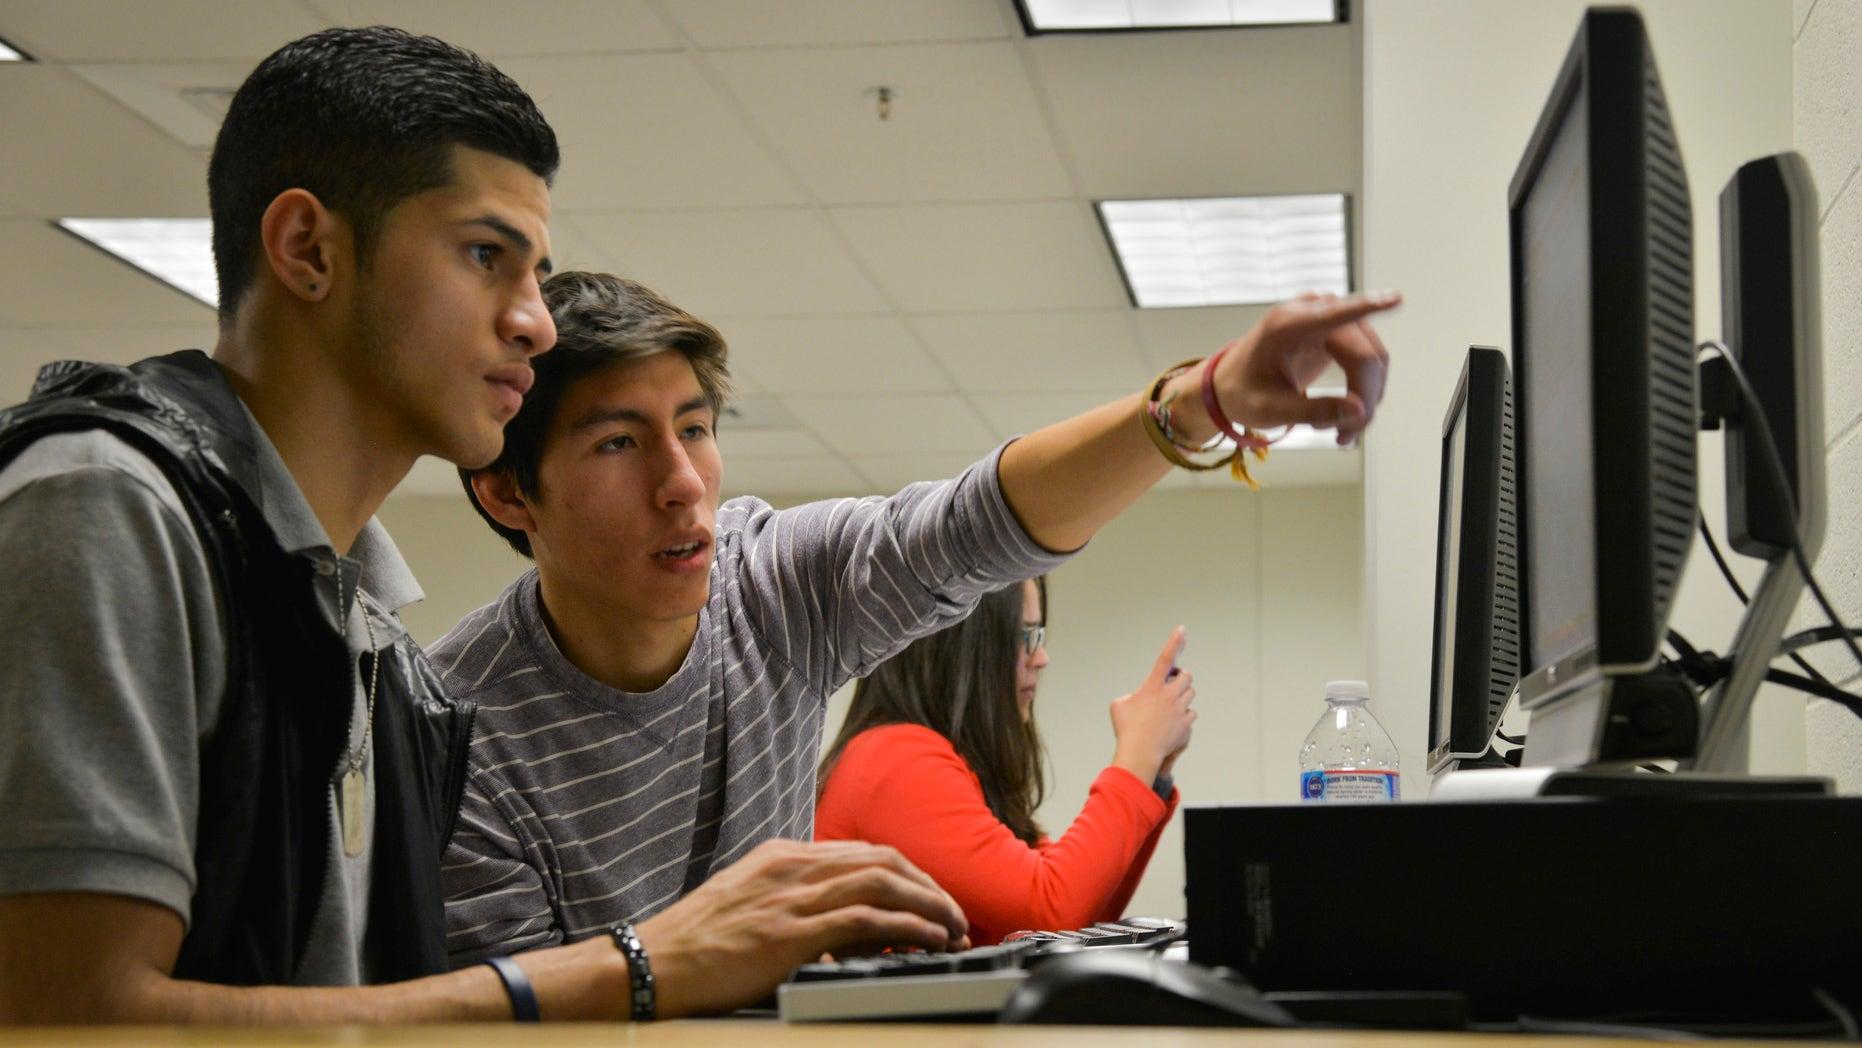 ARLINGTON, VA - JANUARY 23:Rommel Romano, L, a Washington Lee High School student, gets help writing his college essay from volunteer Rodrigo Ventiades as high school students who are undocumented immigrants receive help writing college essays and scholarship applications from volunteer mentors at Washington Lee High School on Thursday, January 23, 2014, in Arlington, VA.  The Dream Project is an Arlington-based organization that provide mentoring and scholarships to undocumented high school graduates who want to attend college but in many states - including Virginia - do not qualify for in-state tuition.  Ventiades is from Bolivia and Romano is half Dominican Republican/half Salvadorian.  (Photo by Jahi Chikwendiu/The Washington Post via Getty Images)